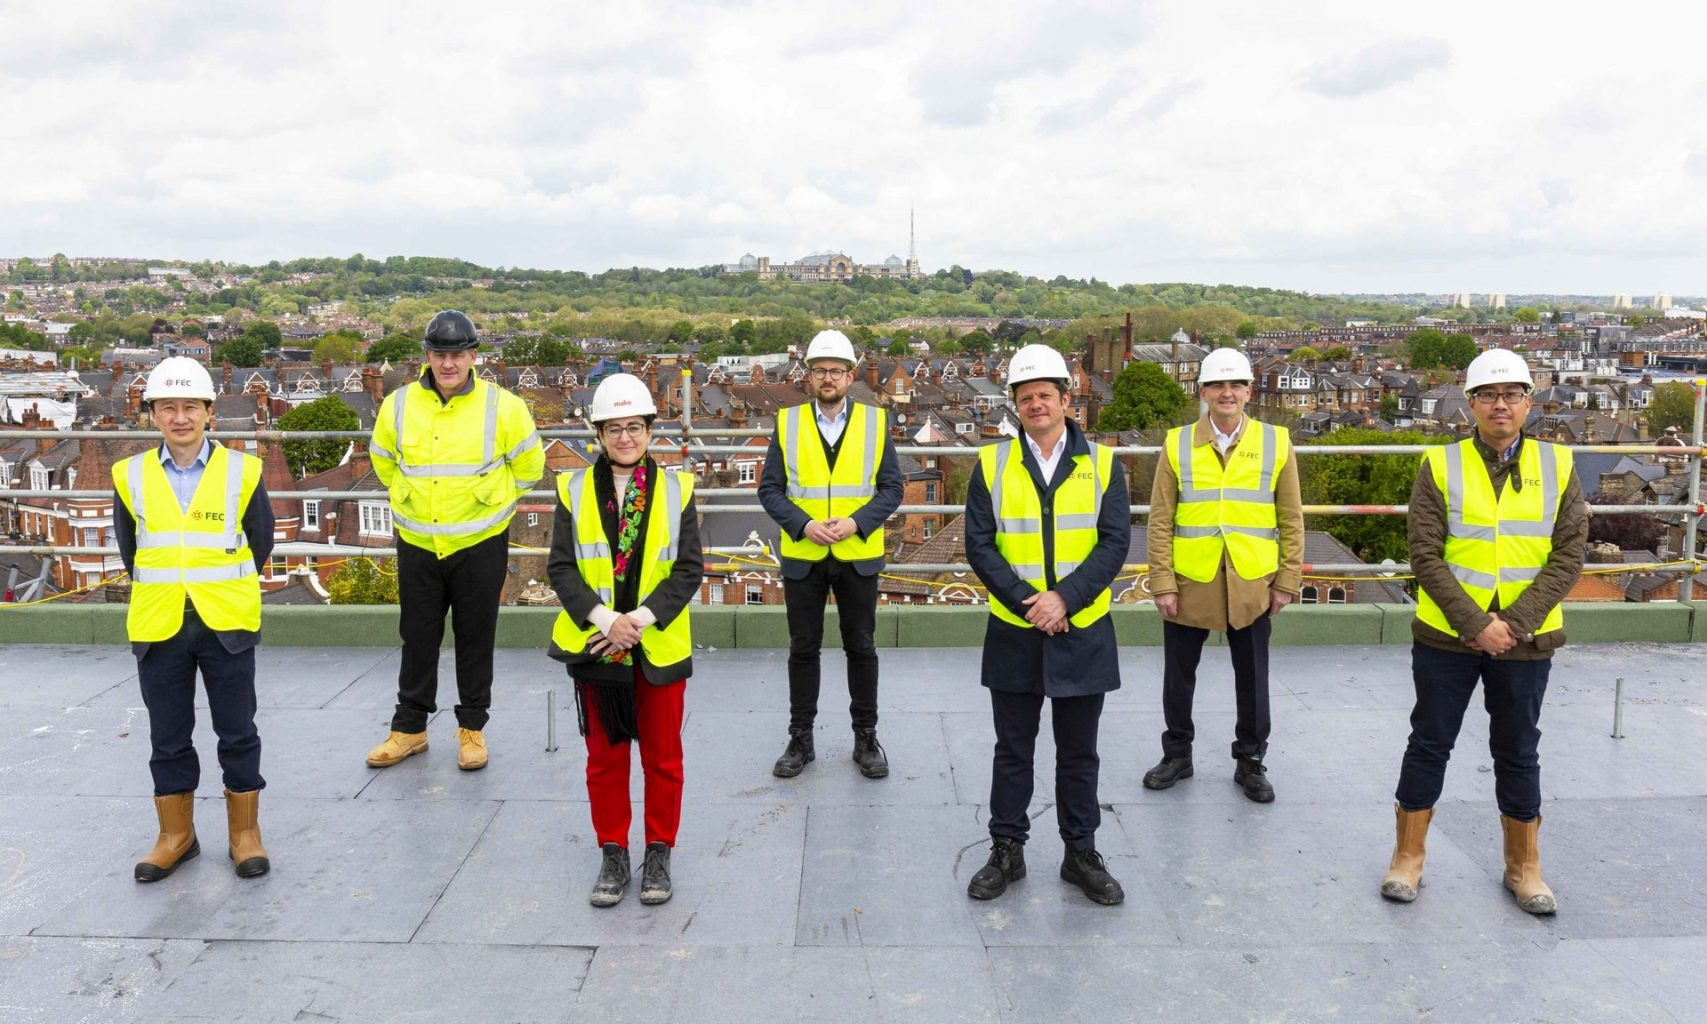 Picture taken from the top of the Uren Building at Hornsey Town Hall with views of Alexandra Palace. From left to right: Nick Poon, Joe Pitt, Katy Ghahremani, James Byrne, John Connolly, Paul Stanley, Scott Lau.